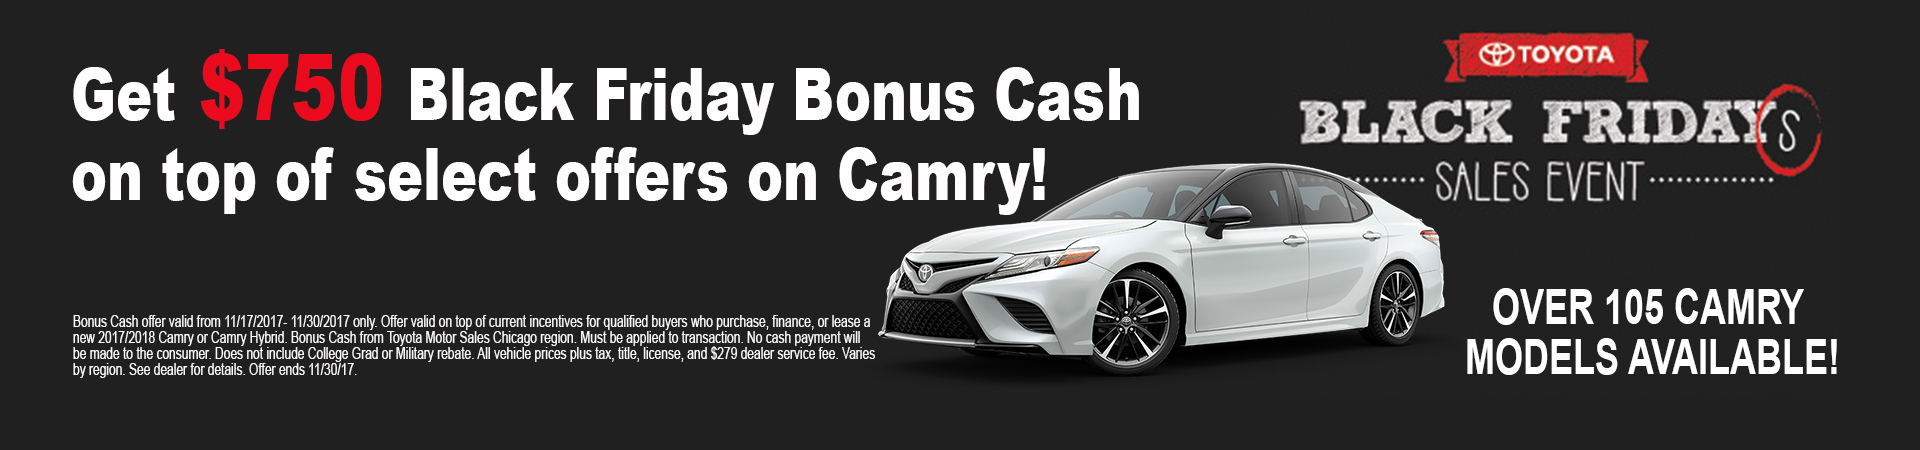 Get Your New Toyota Black Friday deals at Andrew Toyota!